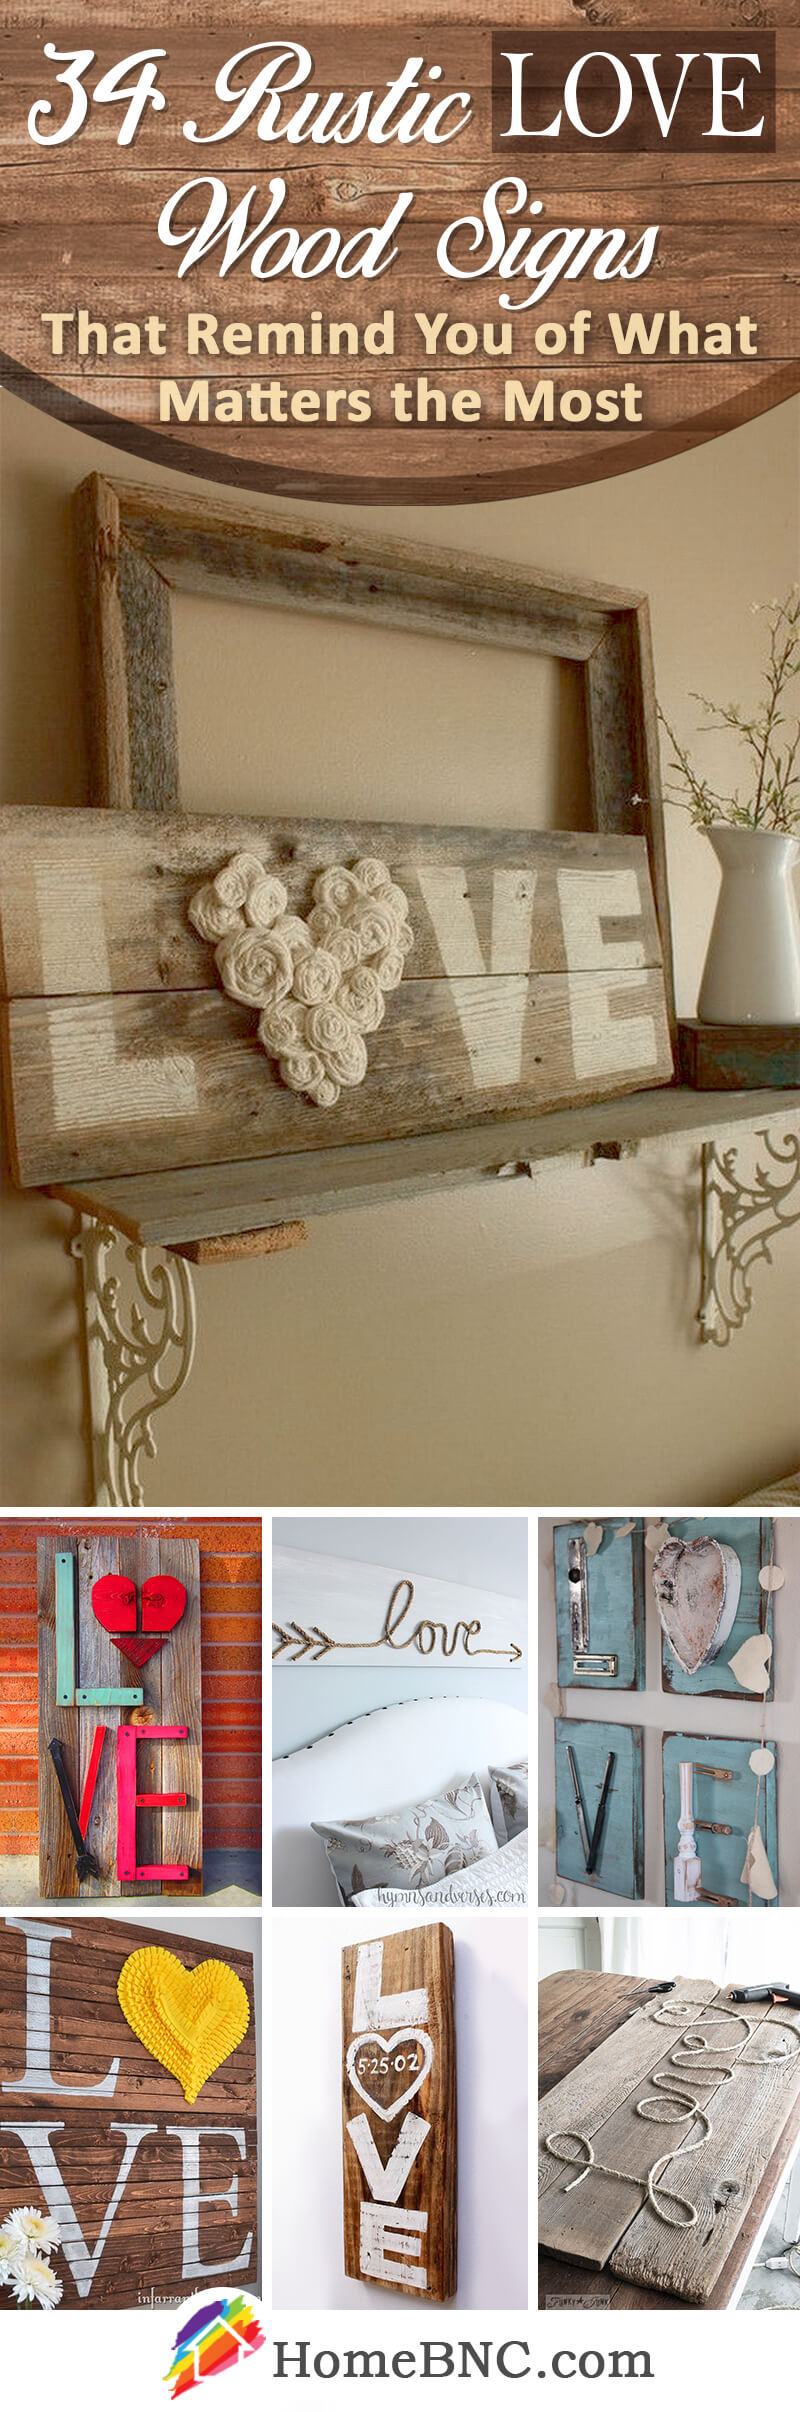 Rustic Love Wood Sign Ideas